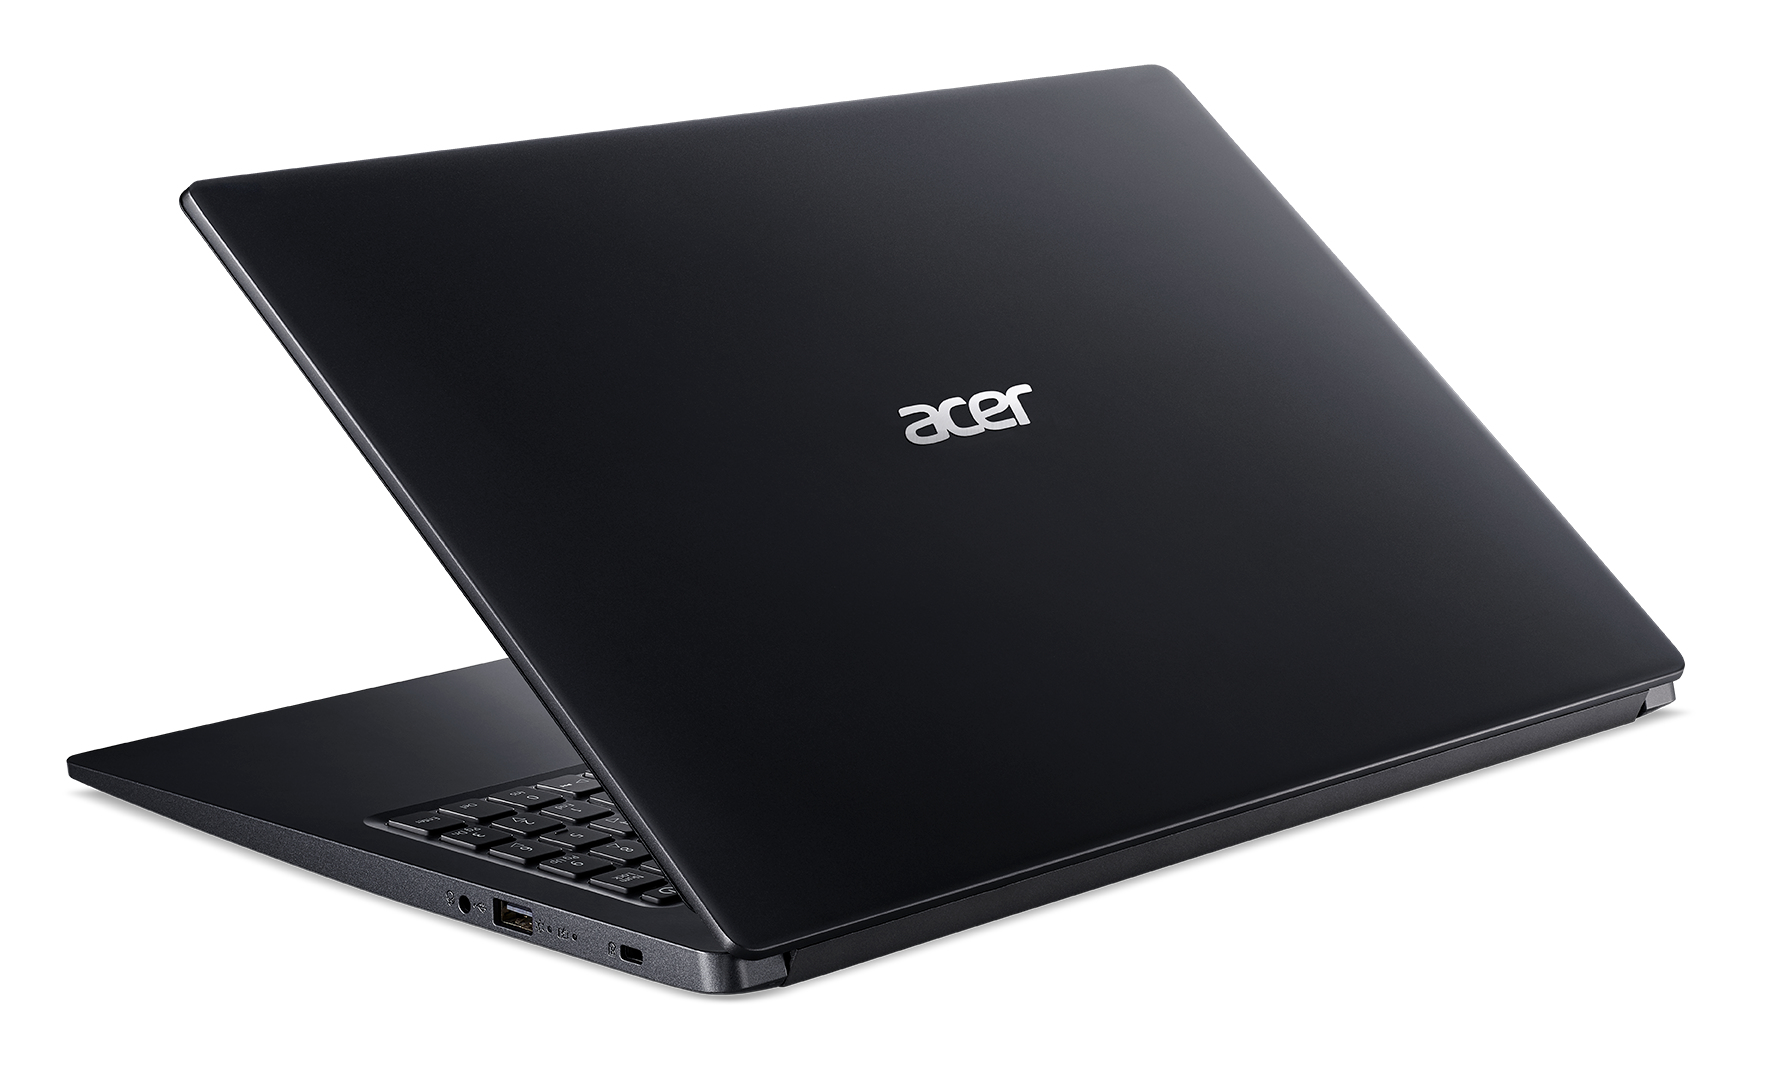 Acer Extensa 15 EX215-22-R40S, Charcoal Black, 15.6 inch FHD LED, AMD Ryzen 3 3250U, 8GB DDR4, 256GB PCIe NVMe SSD, Vega 3 Graphics, No ODD, Wi-Fi 5 AC + BT 4.0, 48 Wh battery, HD webcam with 2 Microphones, Windows 10 Home in S-Mode , US Intl keyboard